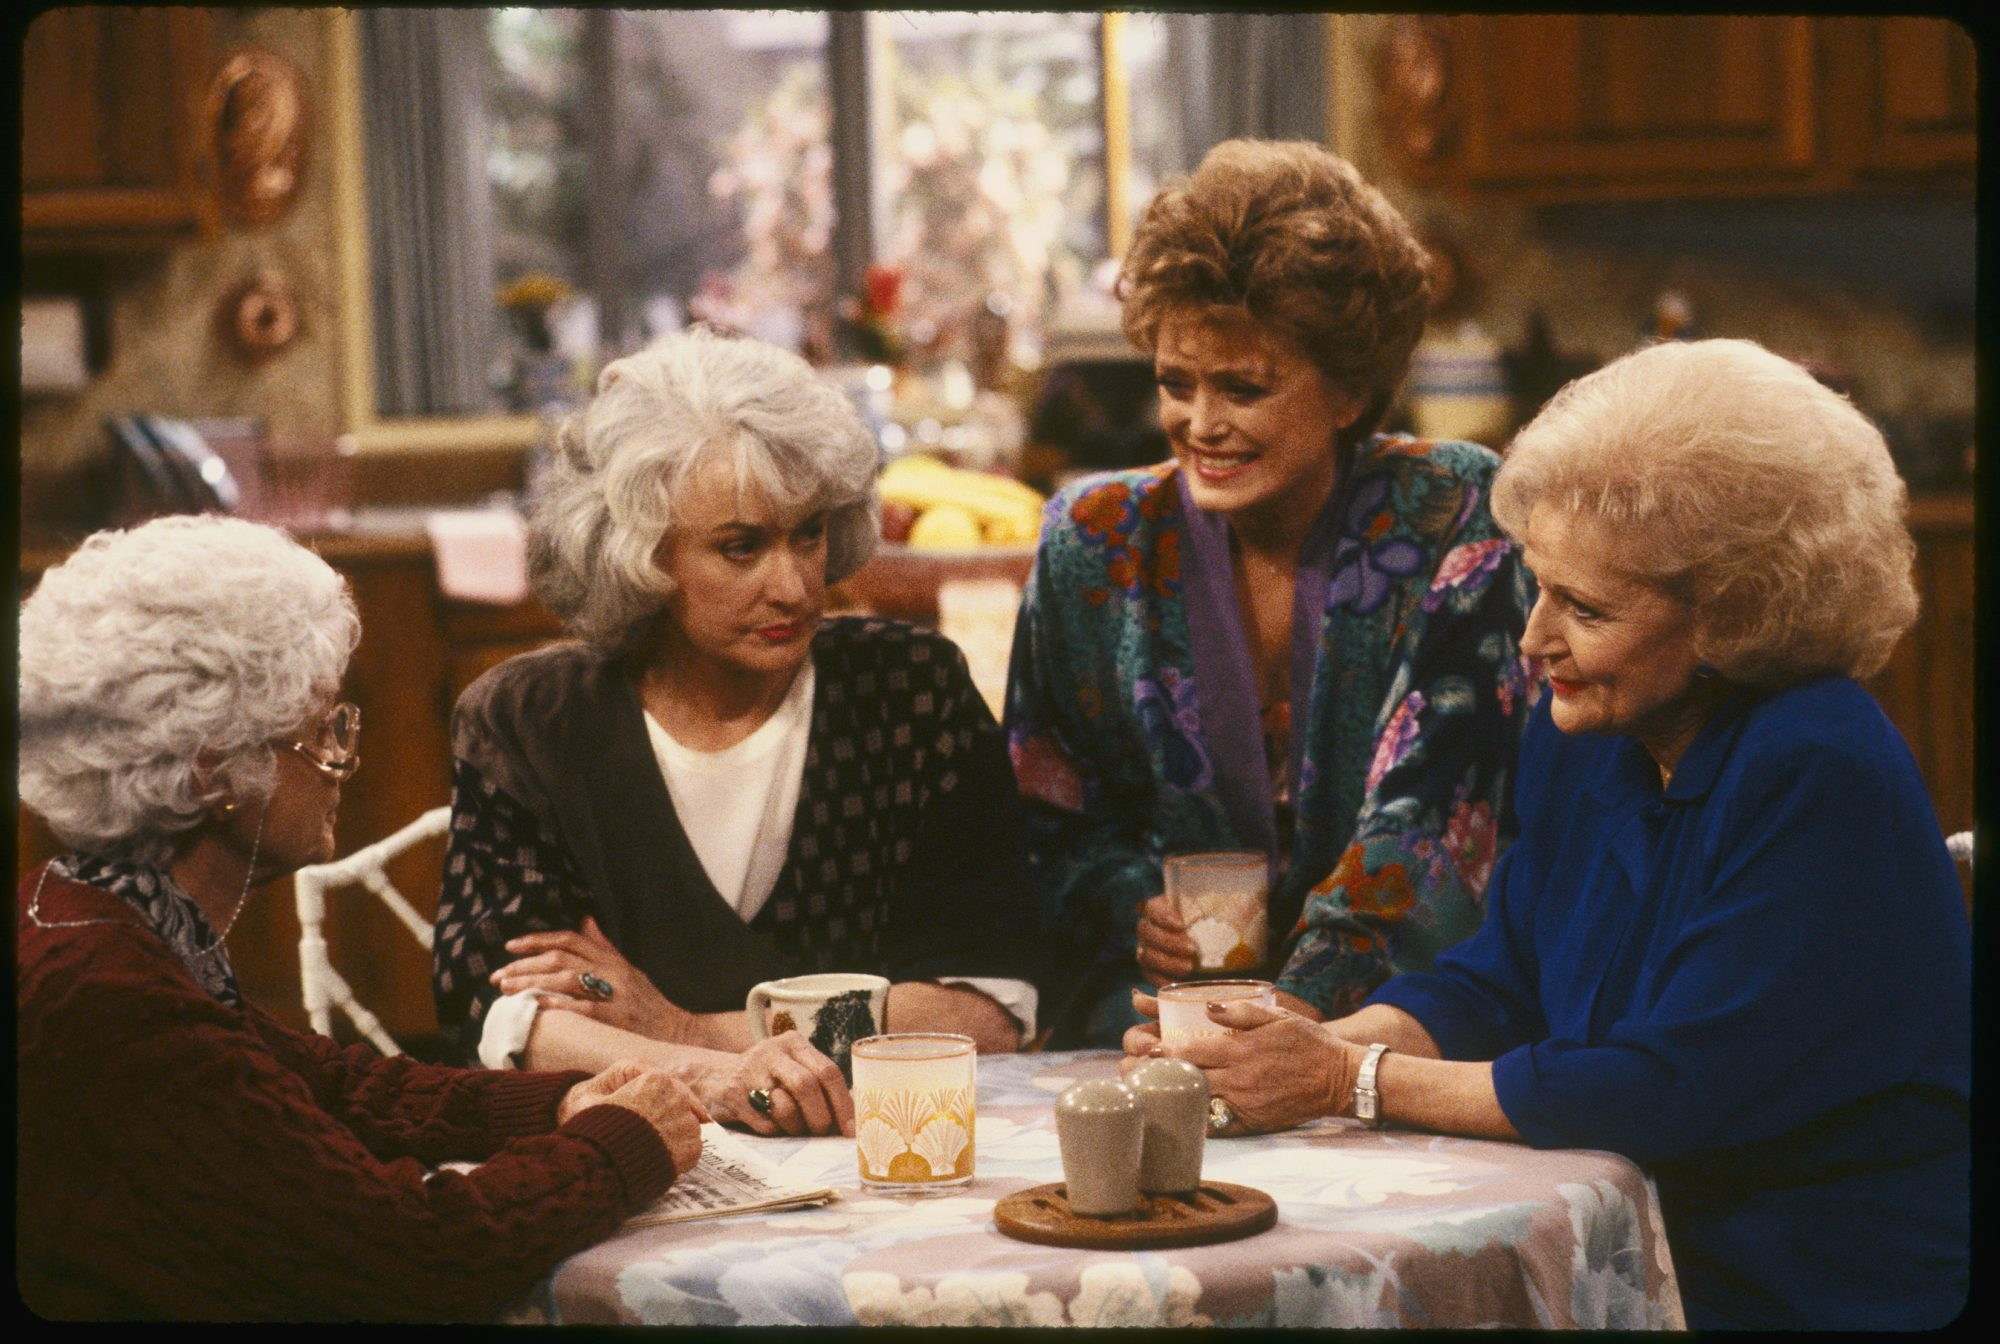 Golden Girls Cast on Set